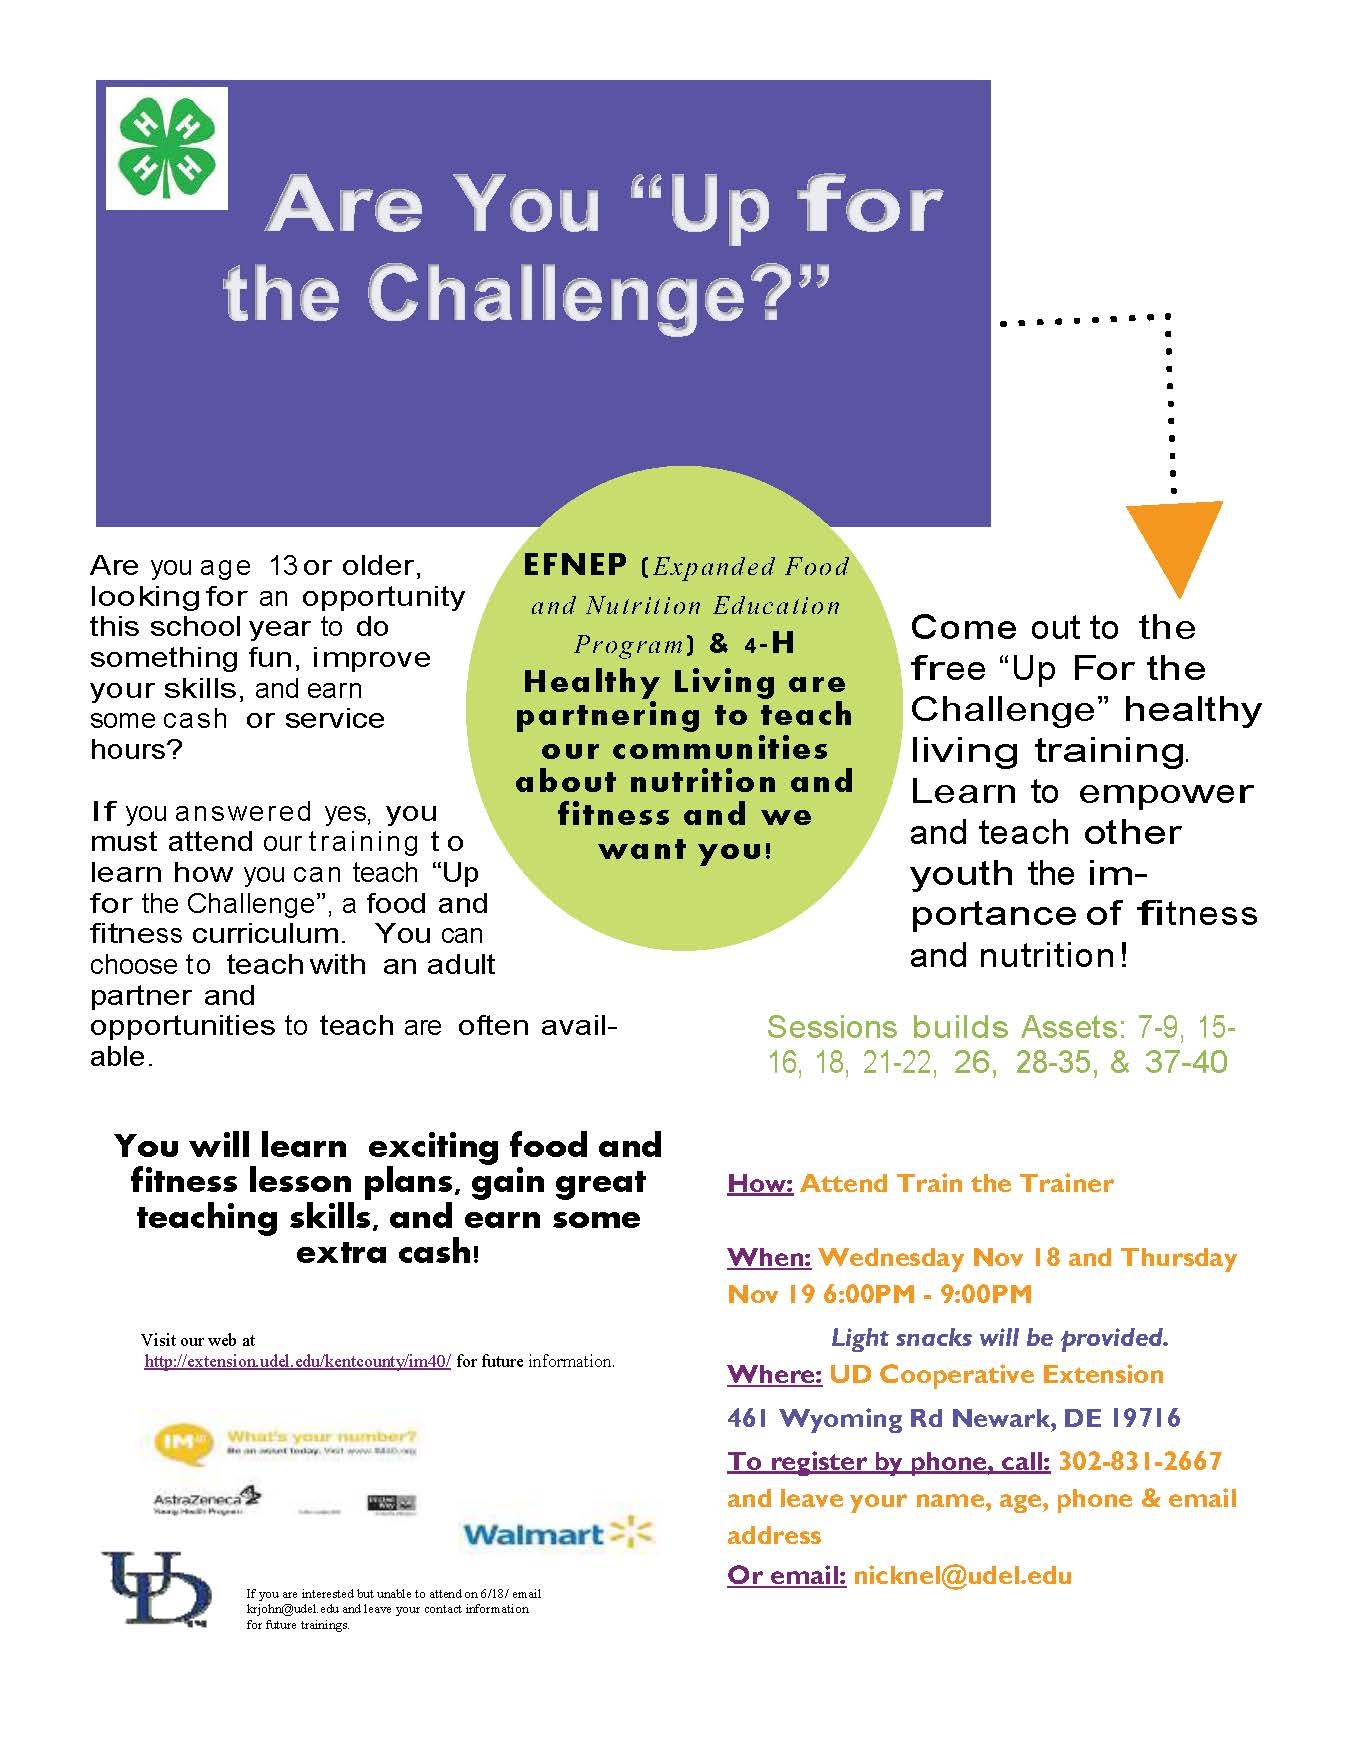 Up For The Challenge Train the Trainer Flyer Fall 2015 (NCC)